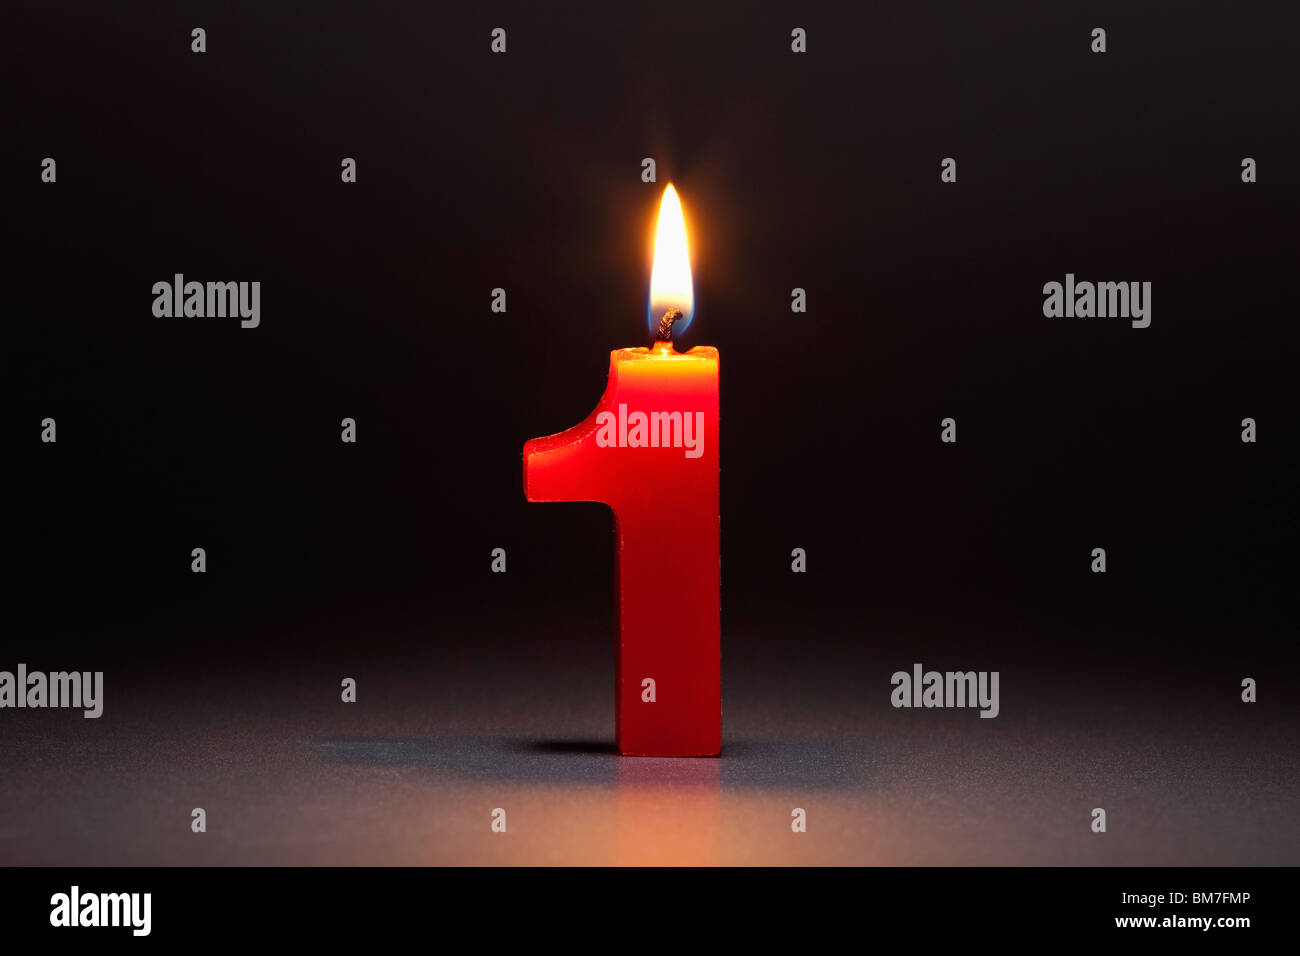 One Candle In The Shape Of The Number 1 - Stock Image